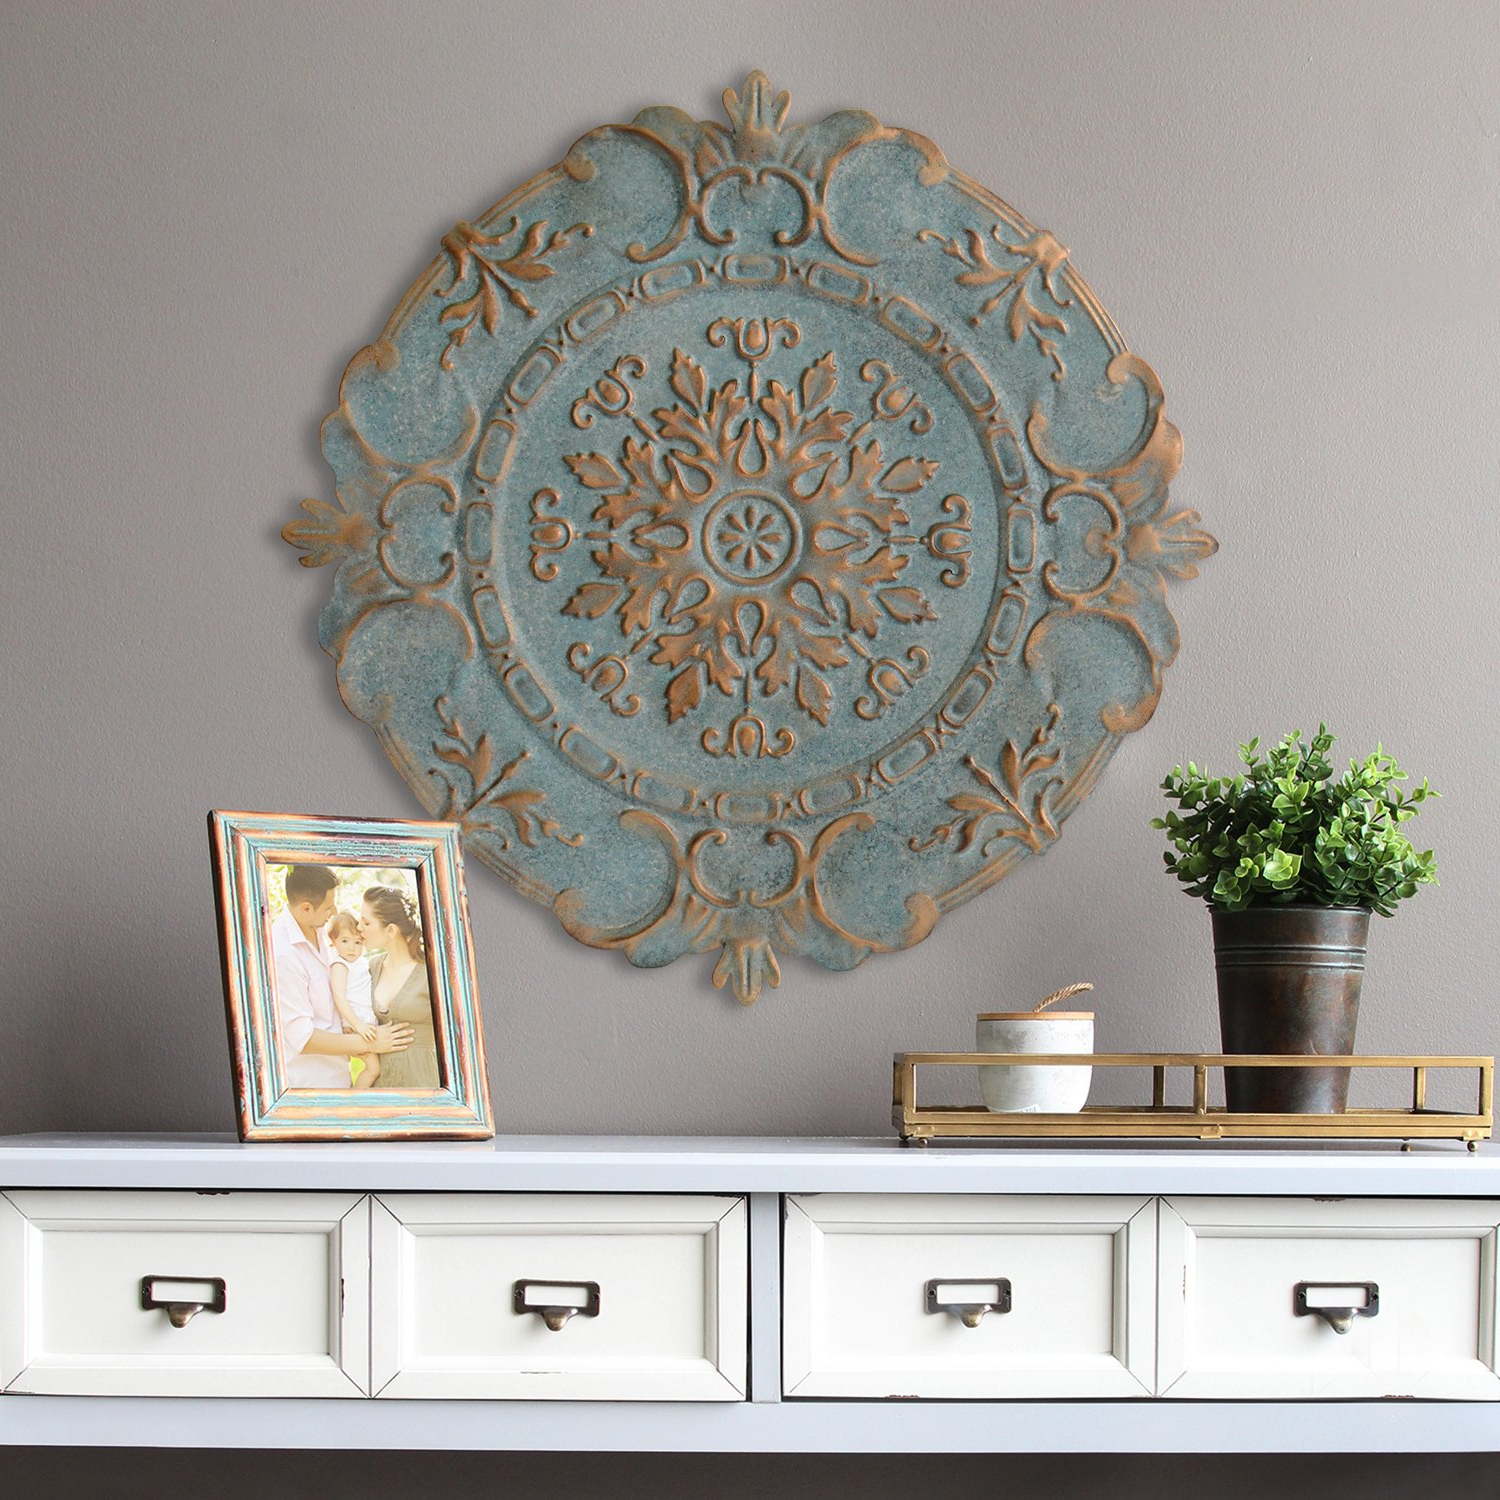 Amazon: Stratton Home Decor European Medallion Wall Decor, Blue In Most Current European Medallion Wall Decor (Gallery 2 of 20)